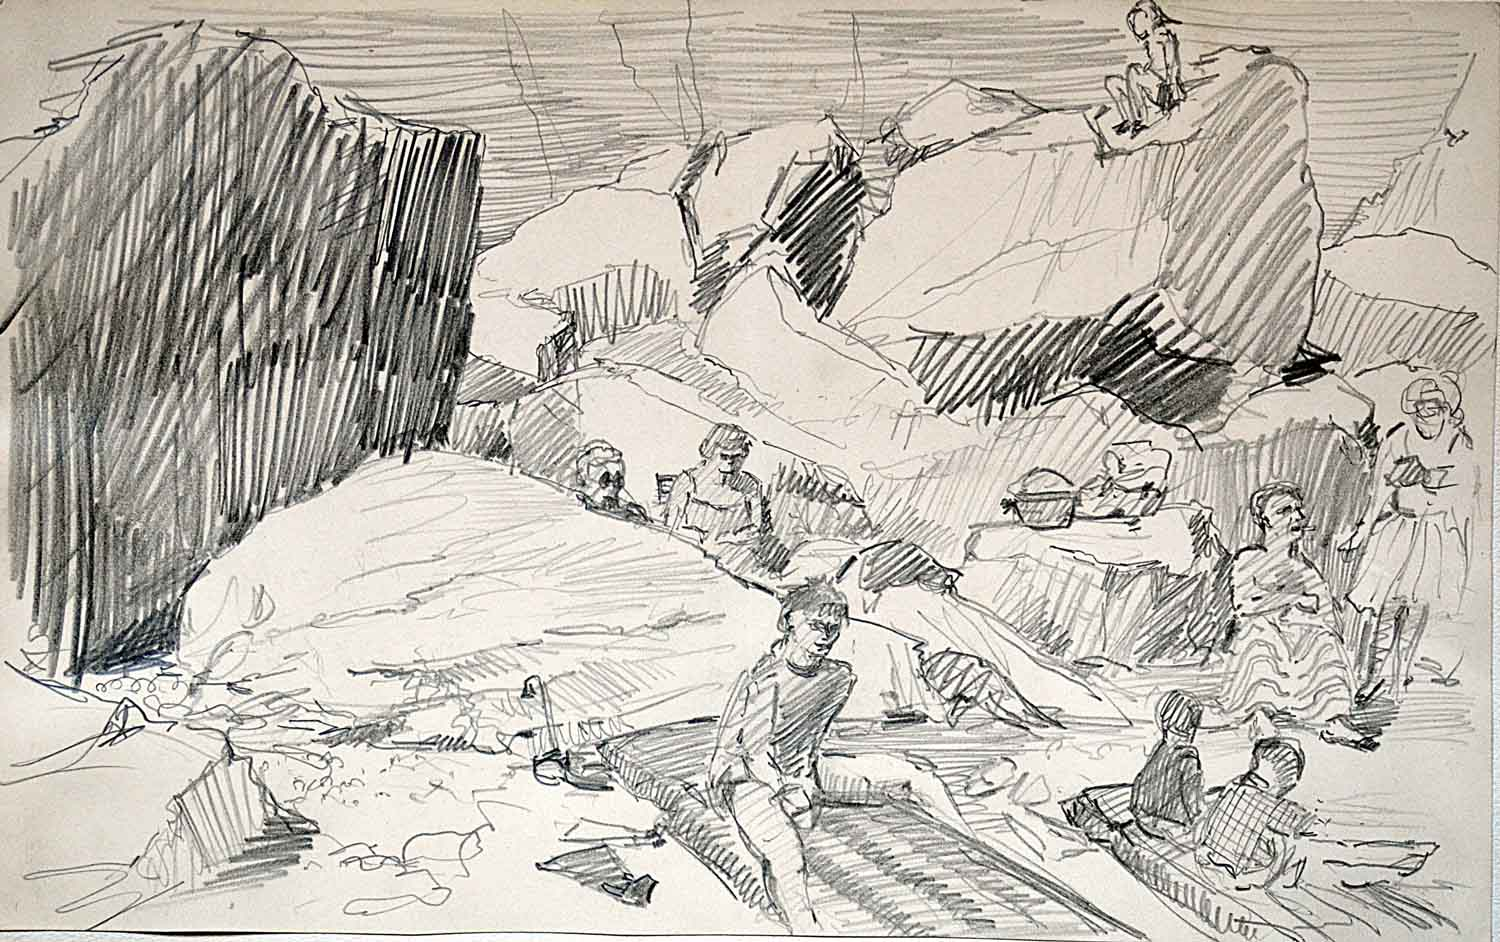 Sark, sketch of rocks & people